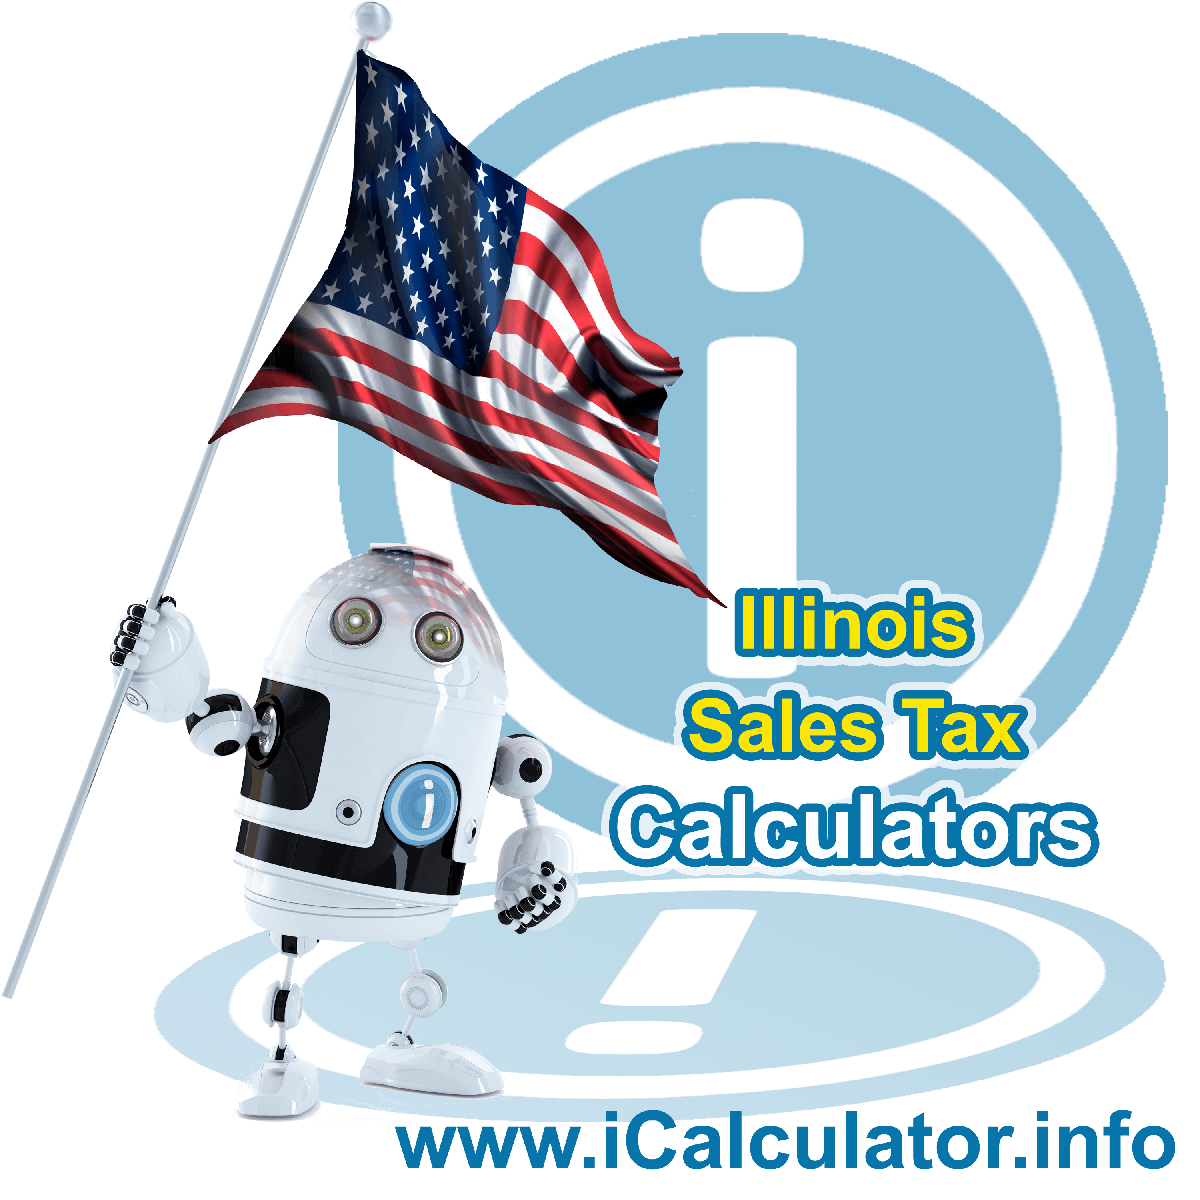 Dekalb Sales Rates: This image illustrates a calculator robot calculating Dekalb sales tax manually using the Dekalb Sales Tax Formula. You can use this information to calculate Dekalb Sales Tax manually or use the Dekalb Sales Tax Calculator to calculate sales tax online.